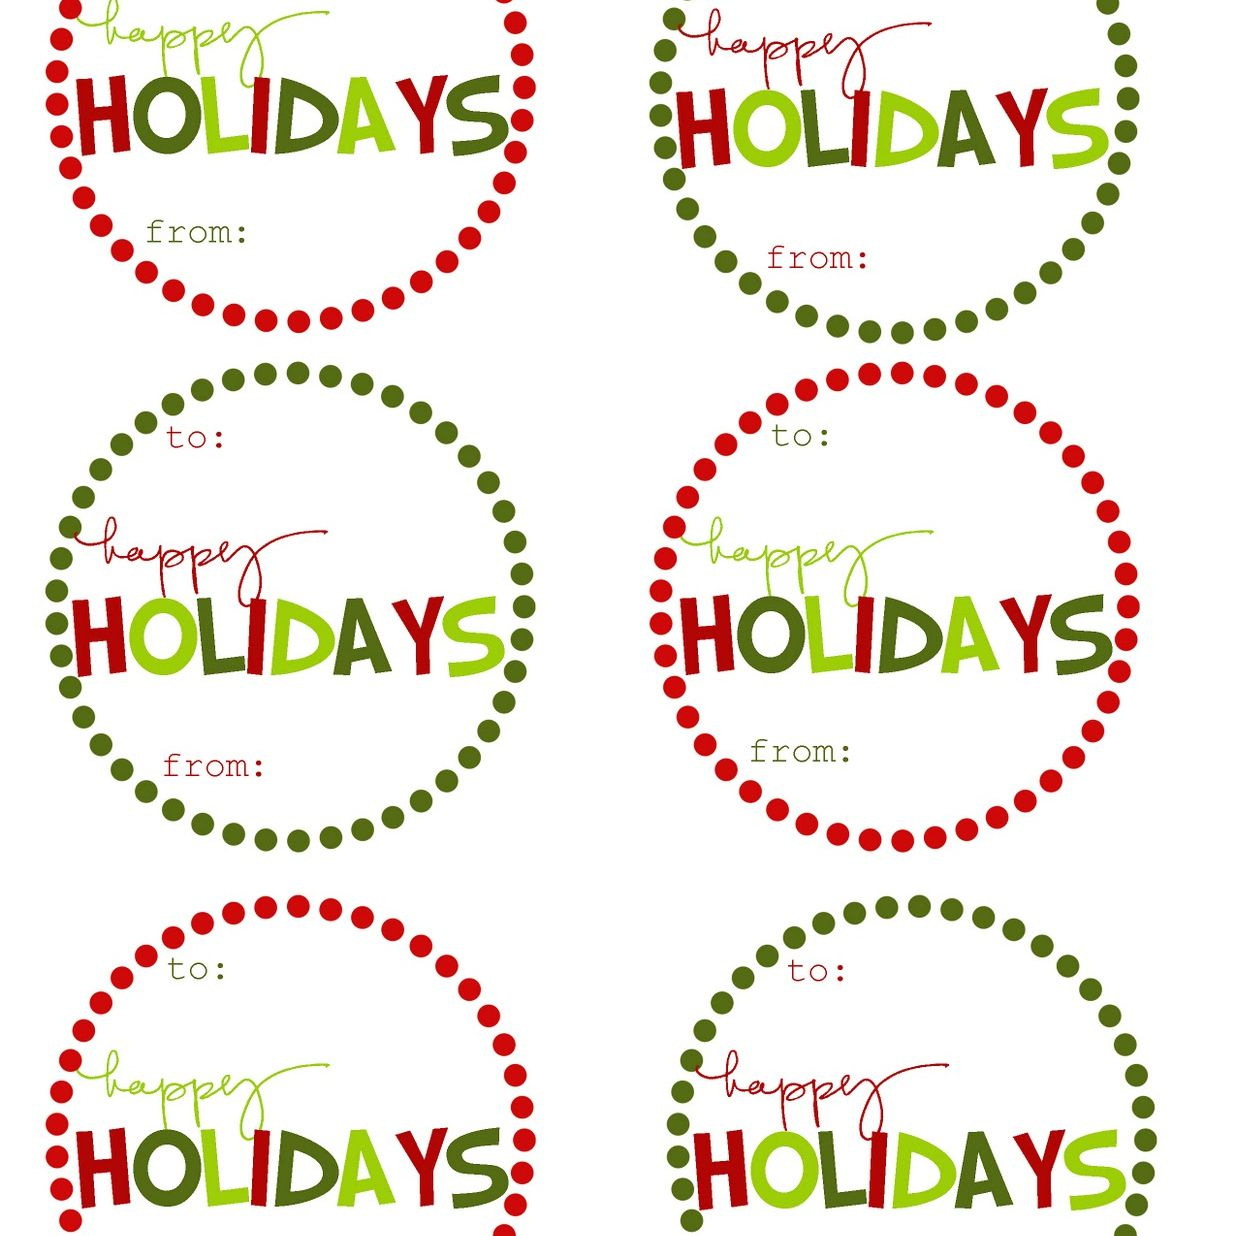 40 Sets Of Free Printable Christmas Gift Tags - Free Printable Gift Tags Personalized